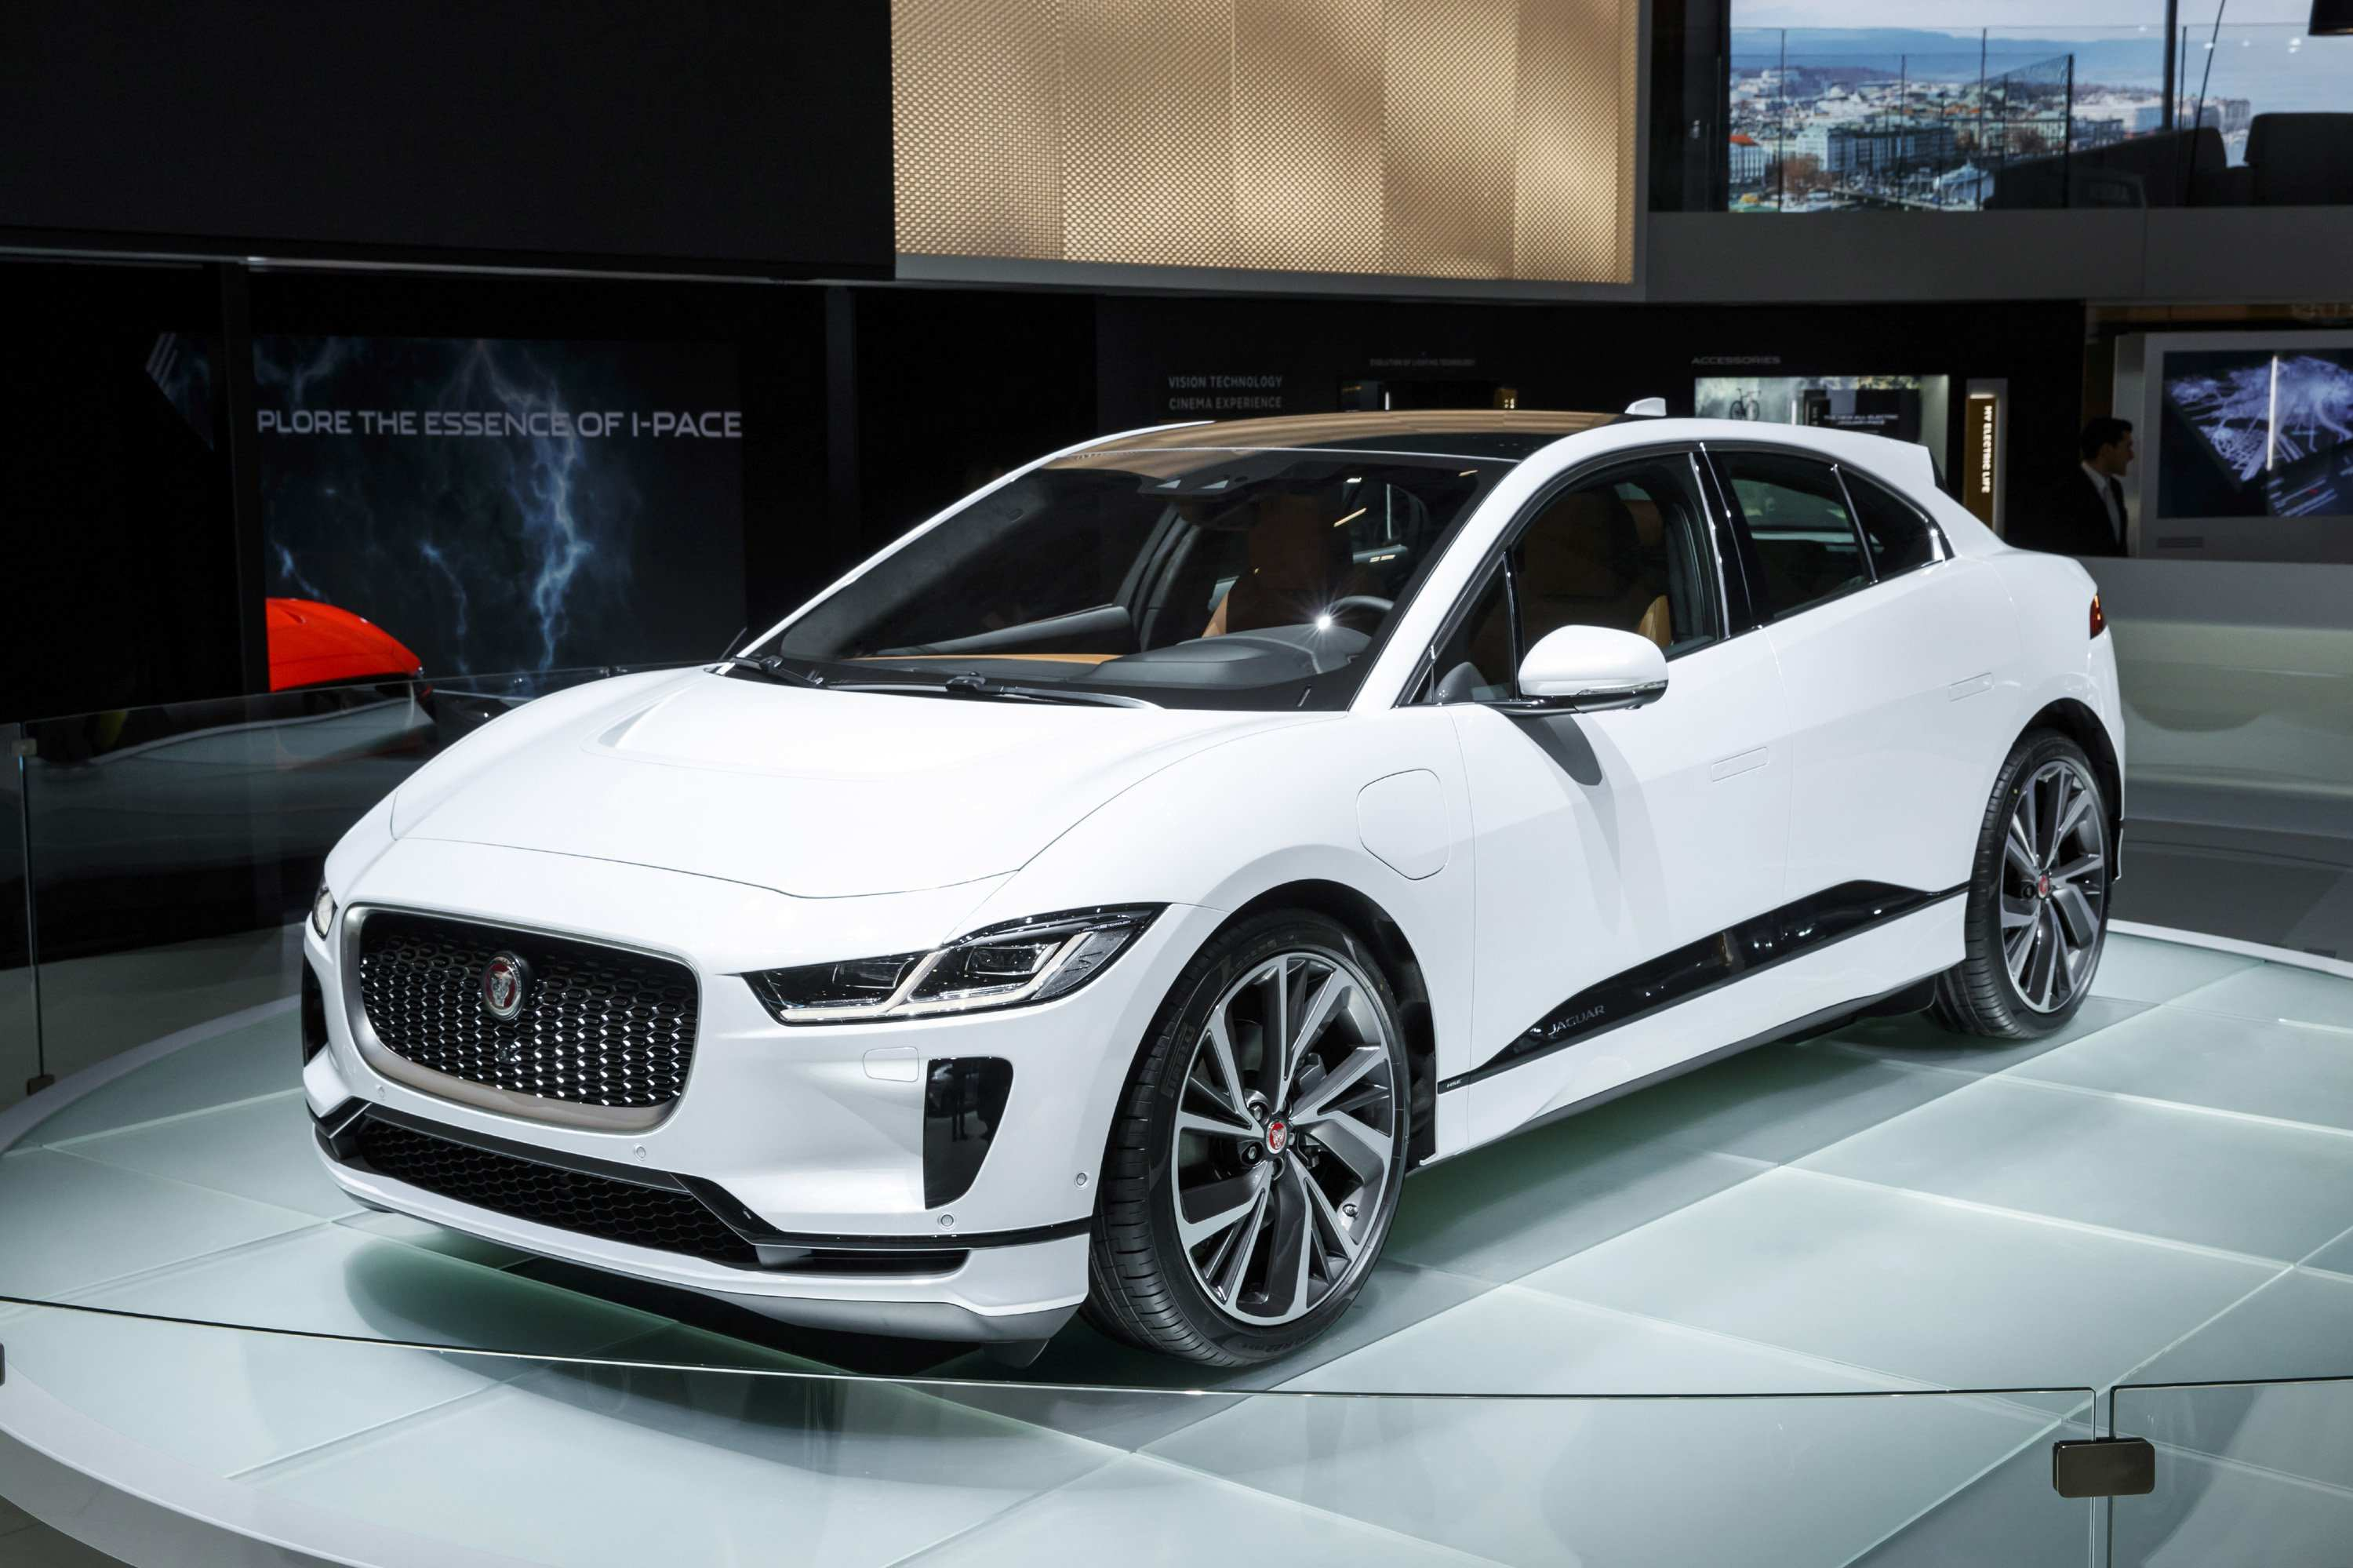 62 Gallery of The Jaguar Electric 2019 Concept Prices for The Jaguar Electric 2019 Concept